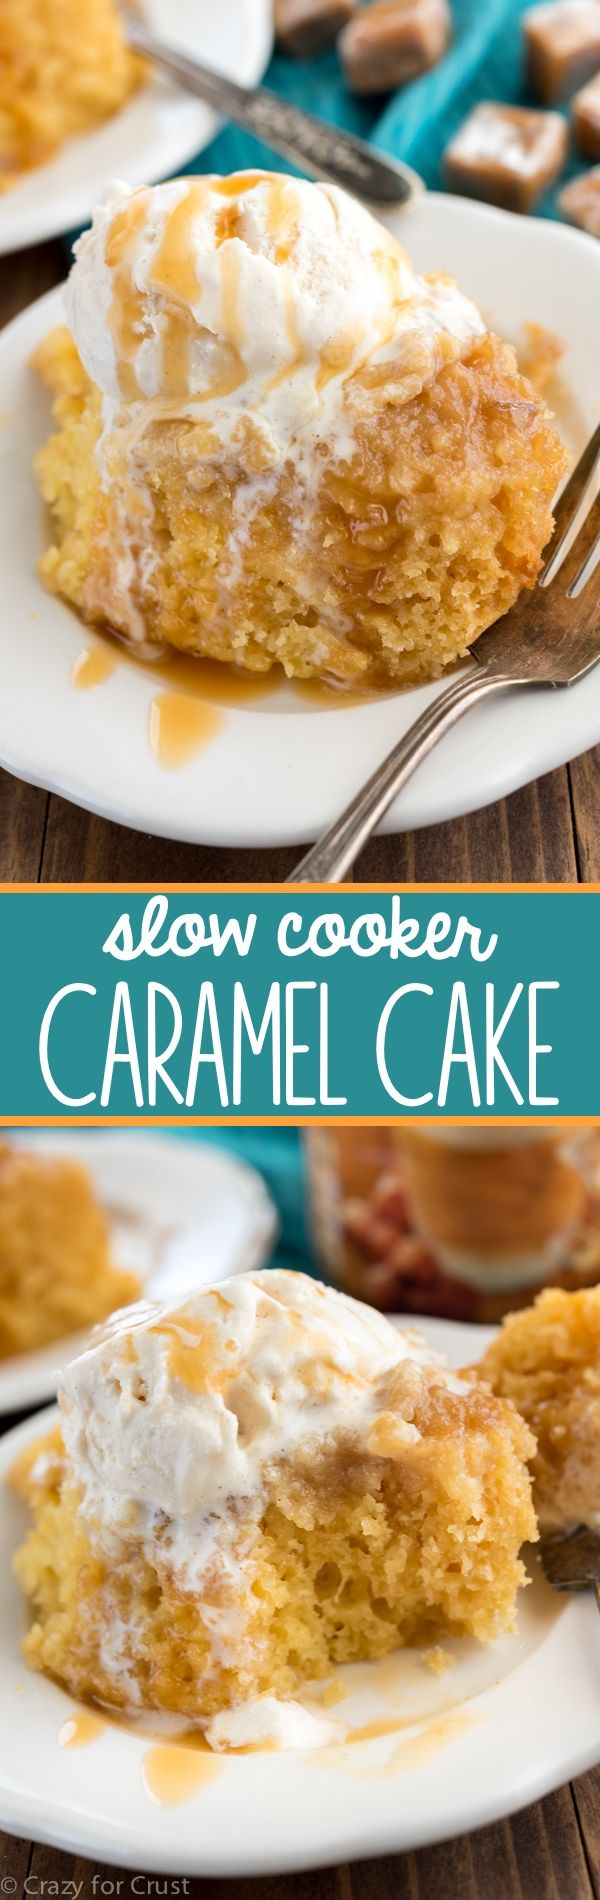 Crazy for Crust Slow Cooker Caramel Cake - Crazy for Crust